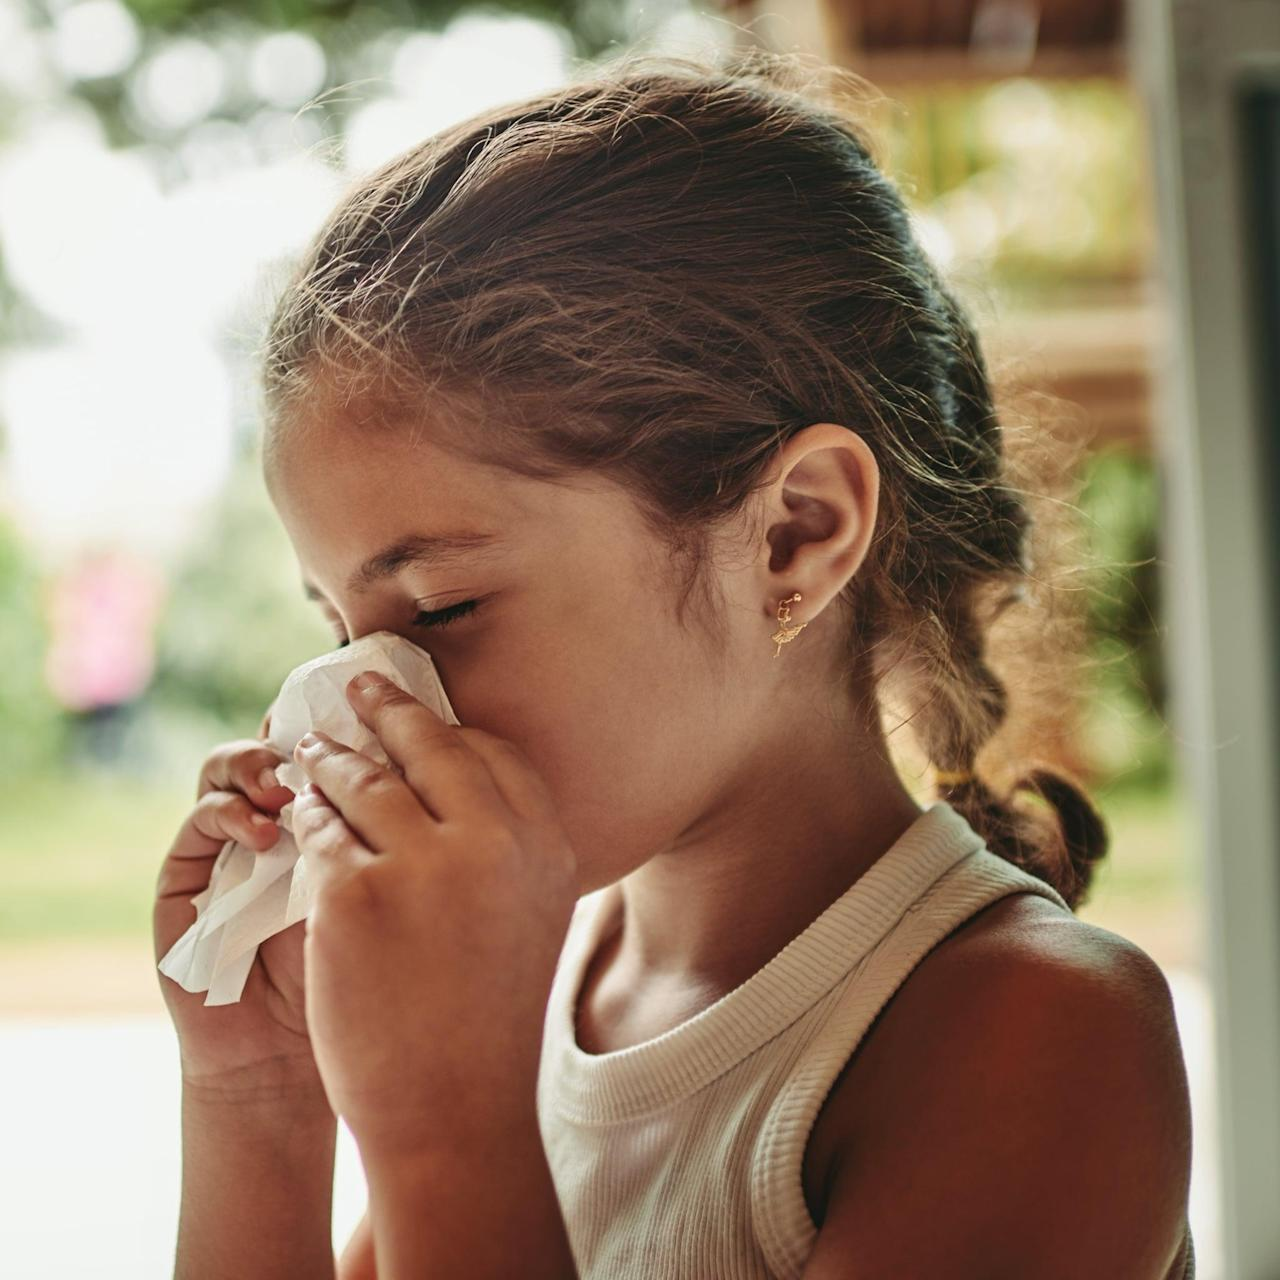 Allergies and COVID-19 Symptoms Can Look Alike: Here's the ...